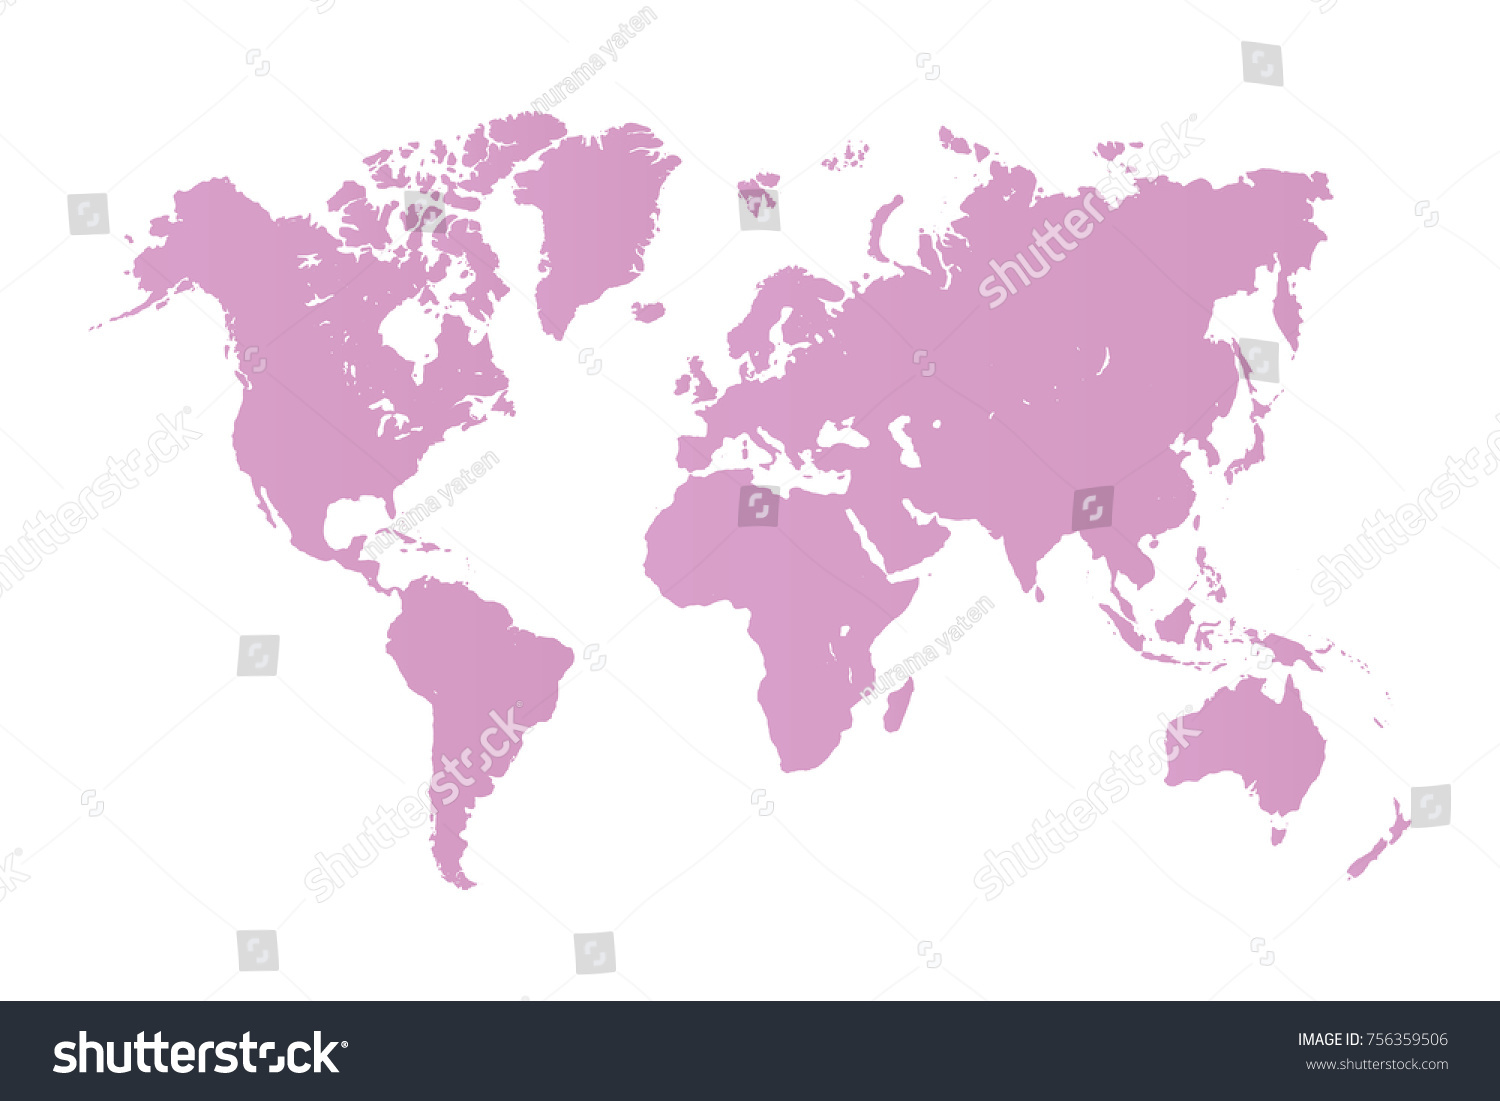 World map isolated on white background vectores en stock 756359506 world map isolated on white background best popular world map vector blank pink similar world gumiabroncs Gallery